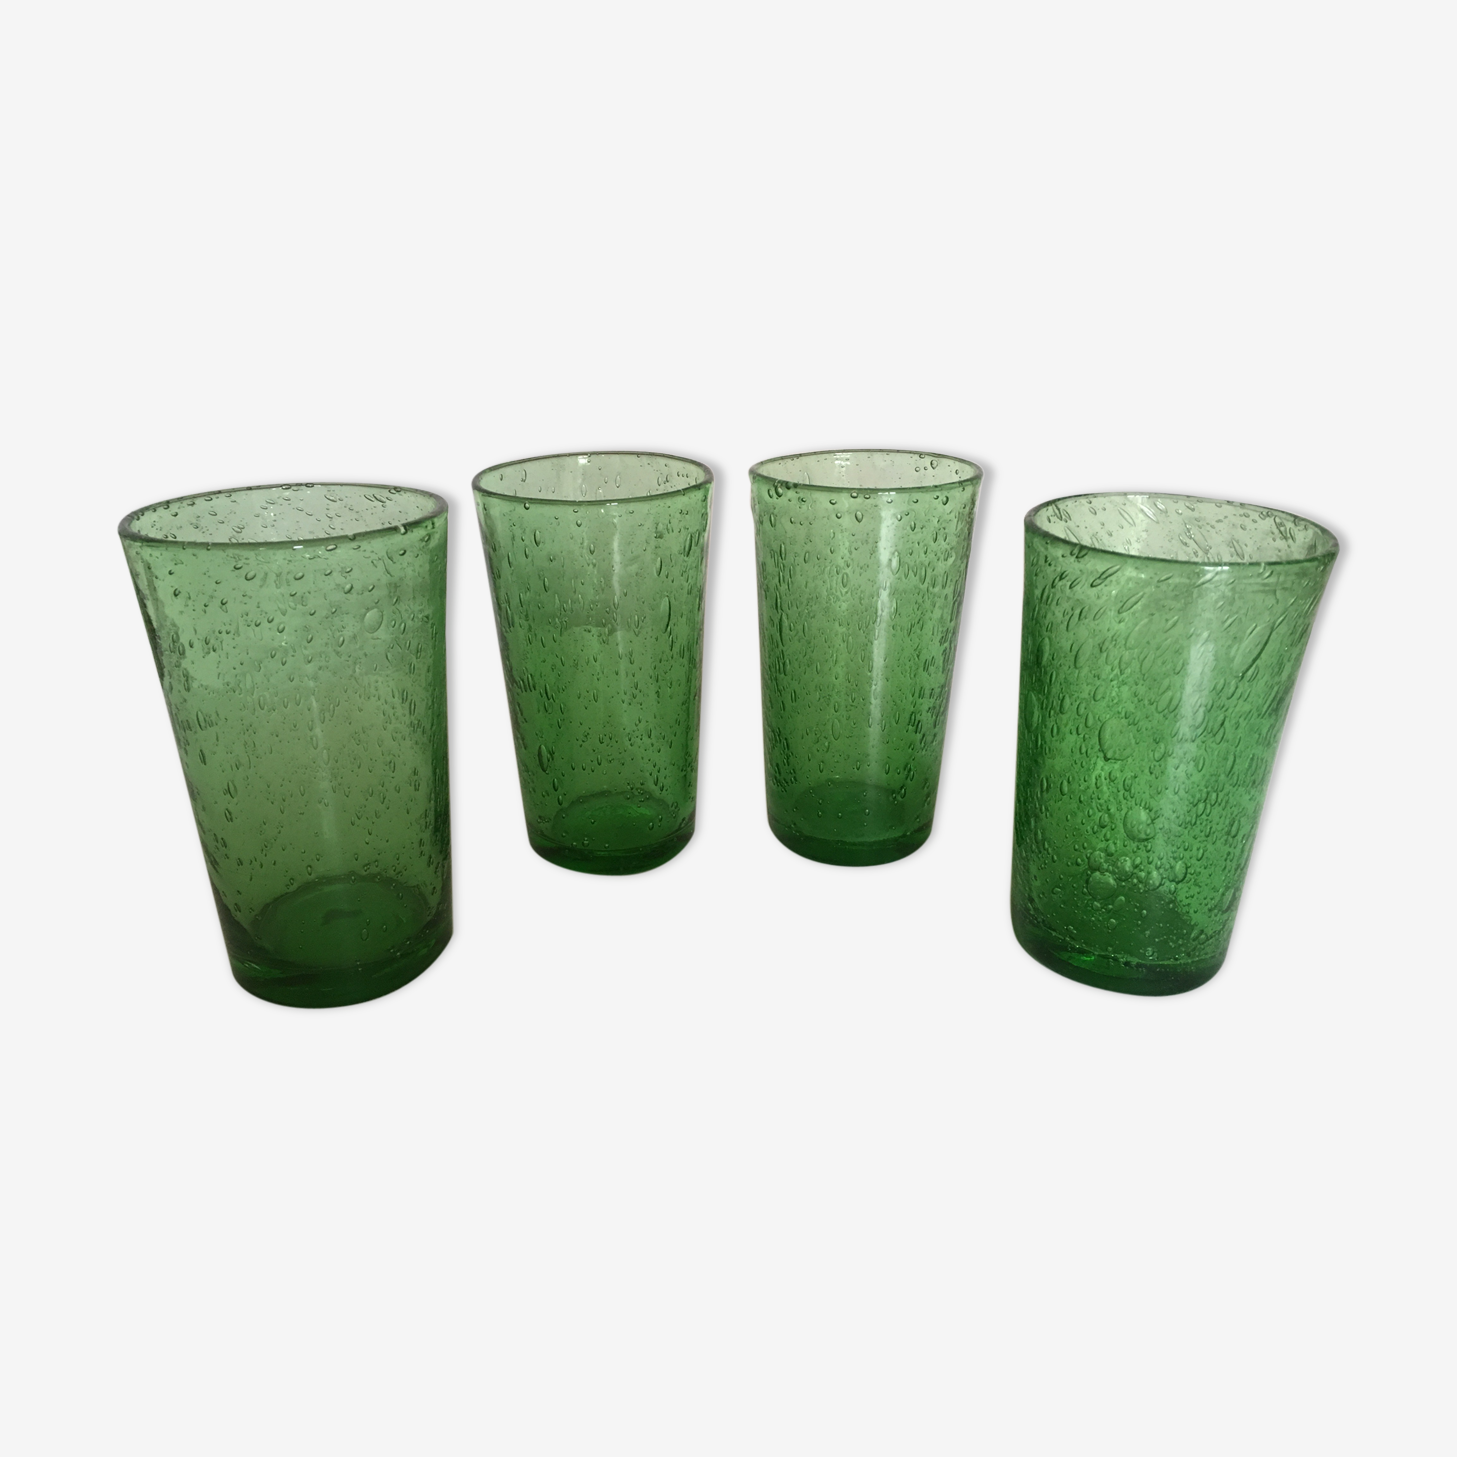 Series of glasses of Biot bubble glass senior cups